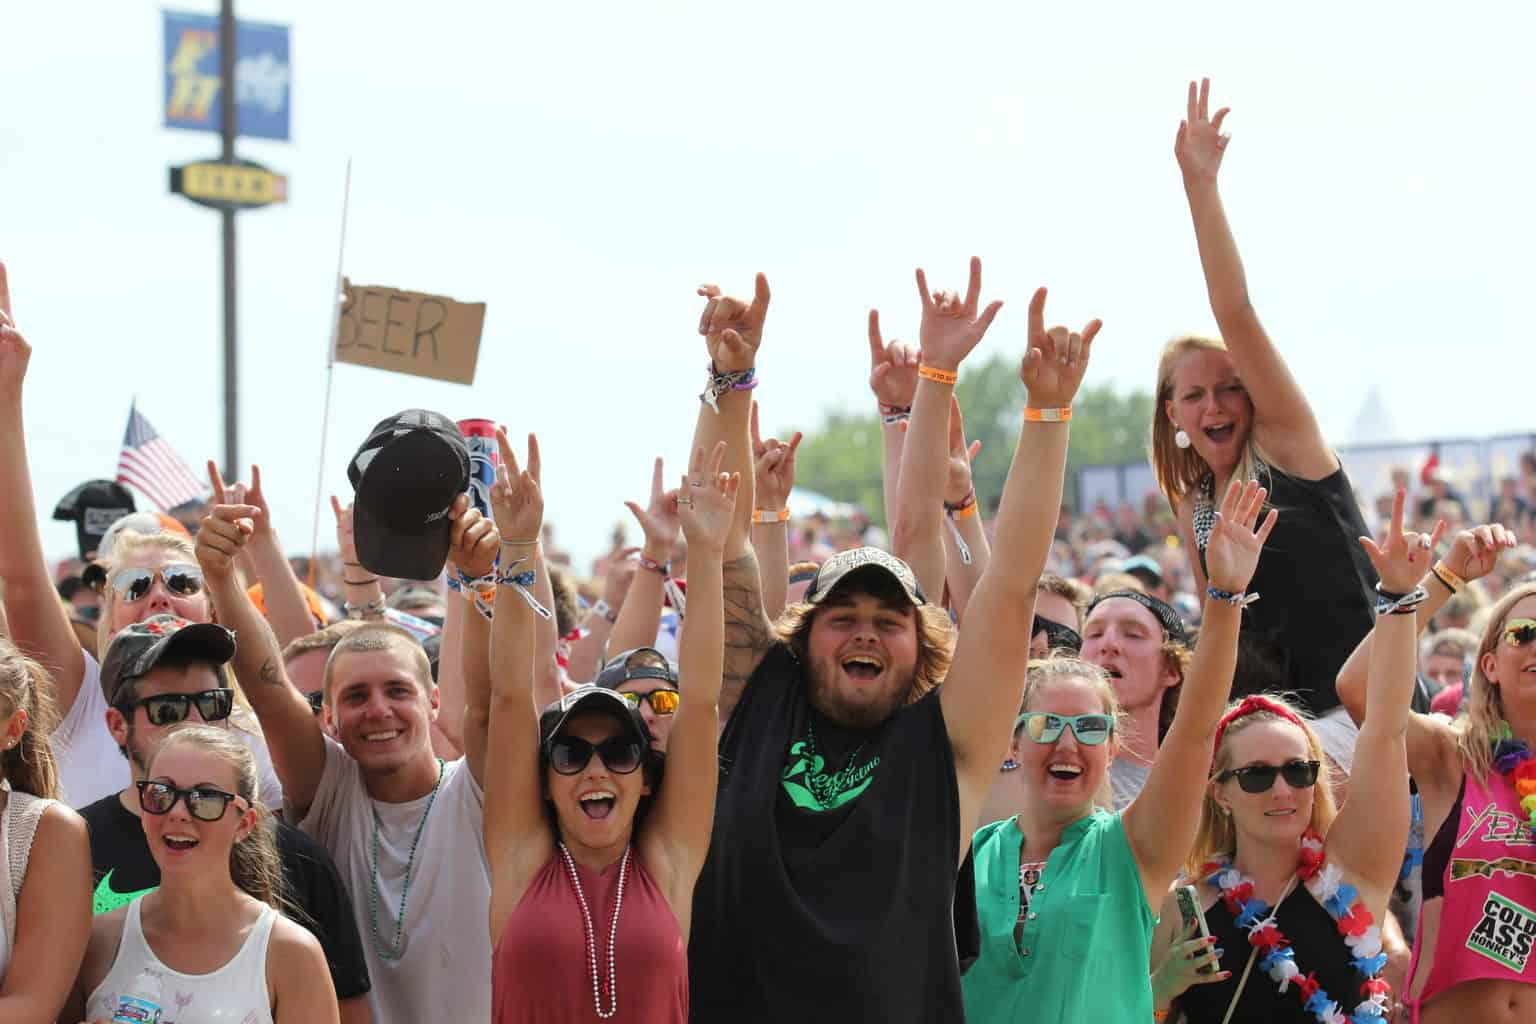 Faster Horses 2016 - The Awesome Mitten